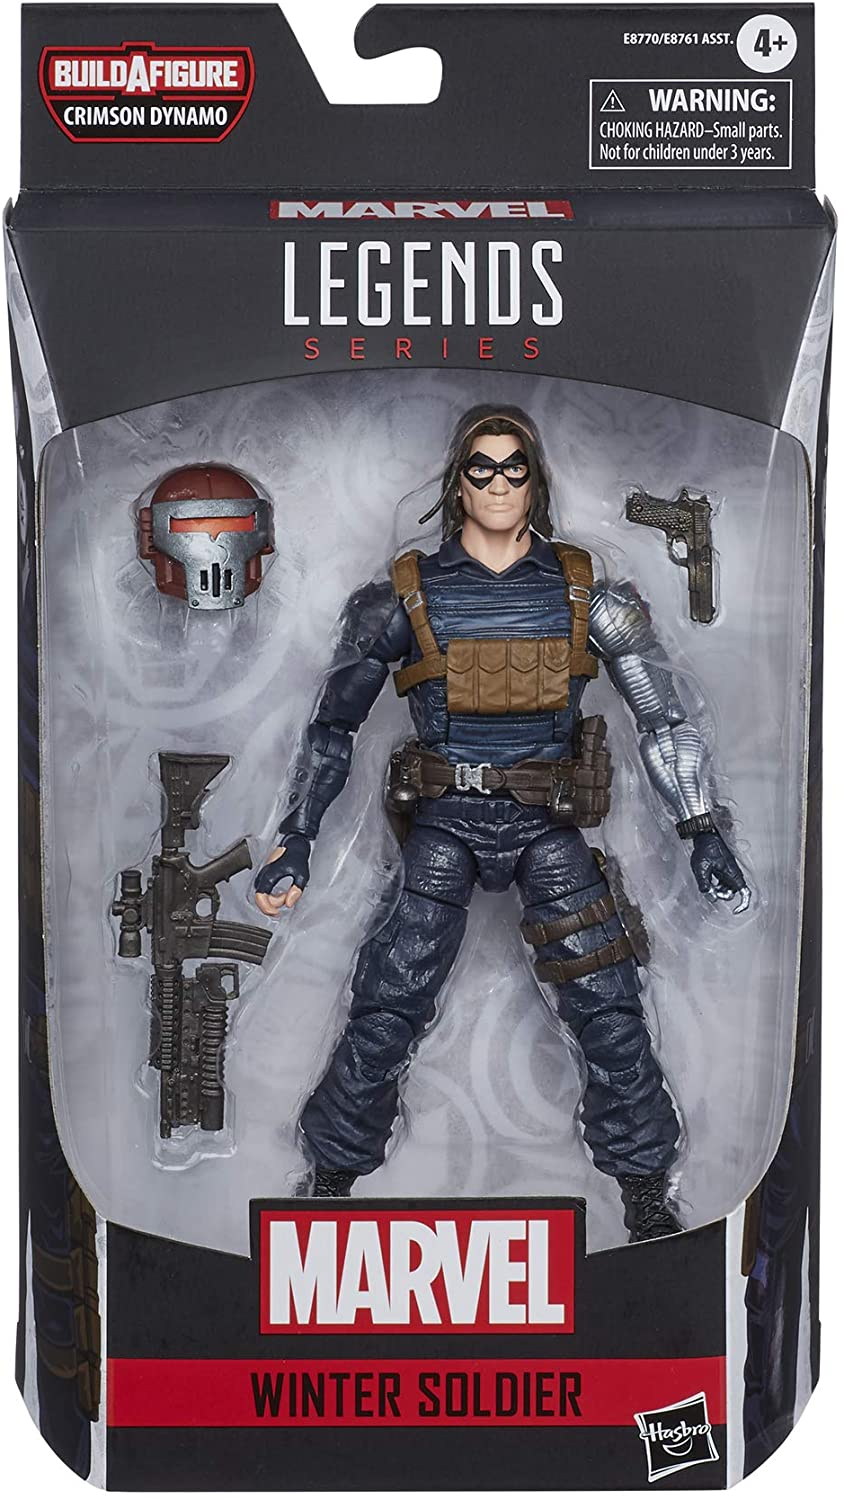 Marvel Hasbro Black Widow Legends Series 6-inch Collectible Winter Soldier Action Figure Toy